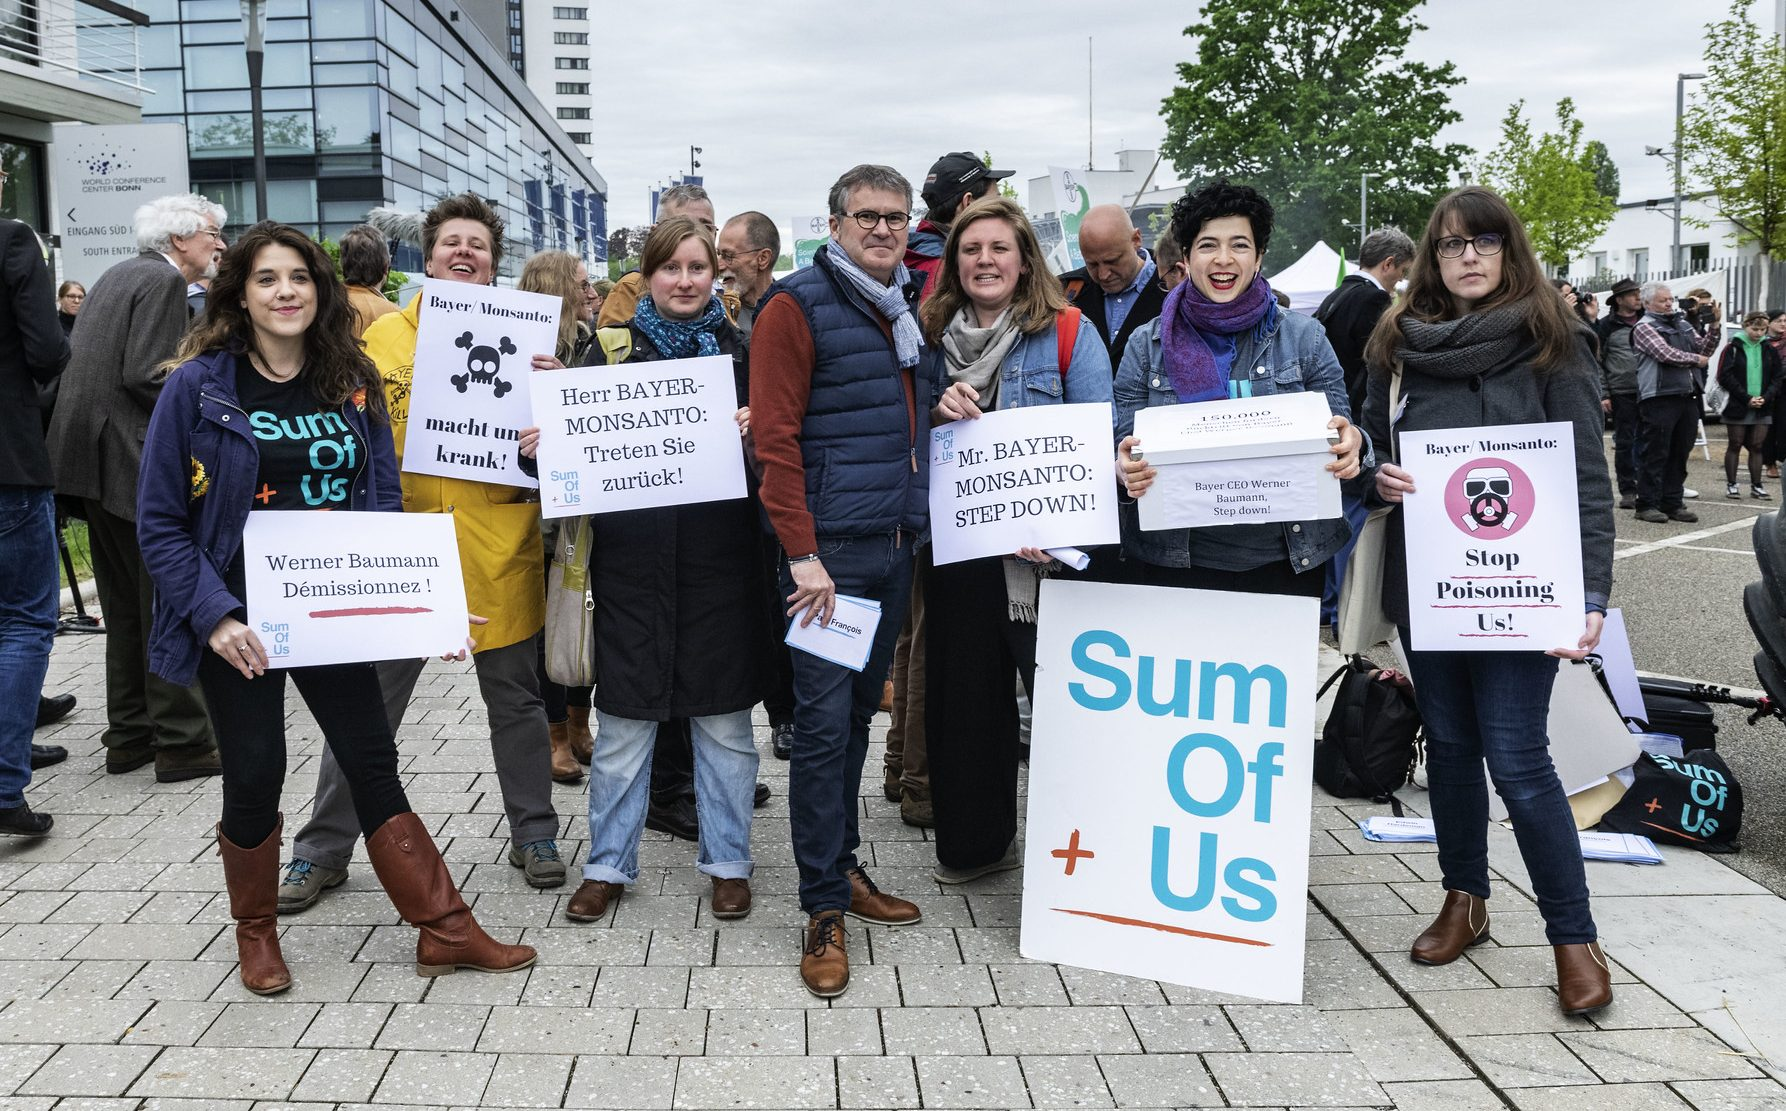 Paul François and Sum of Us activists at the Bayer-Monsanto AGM